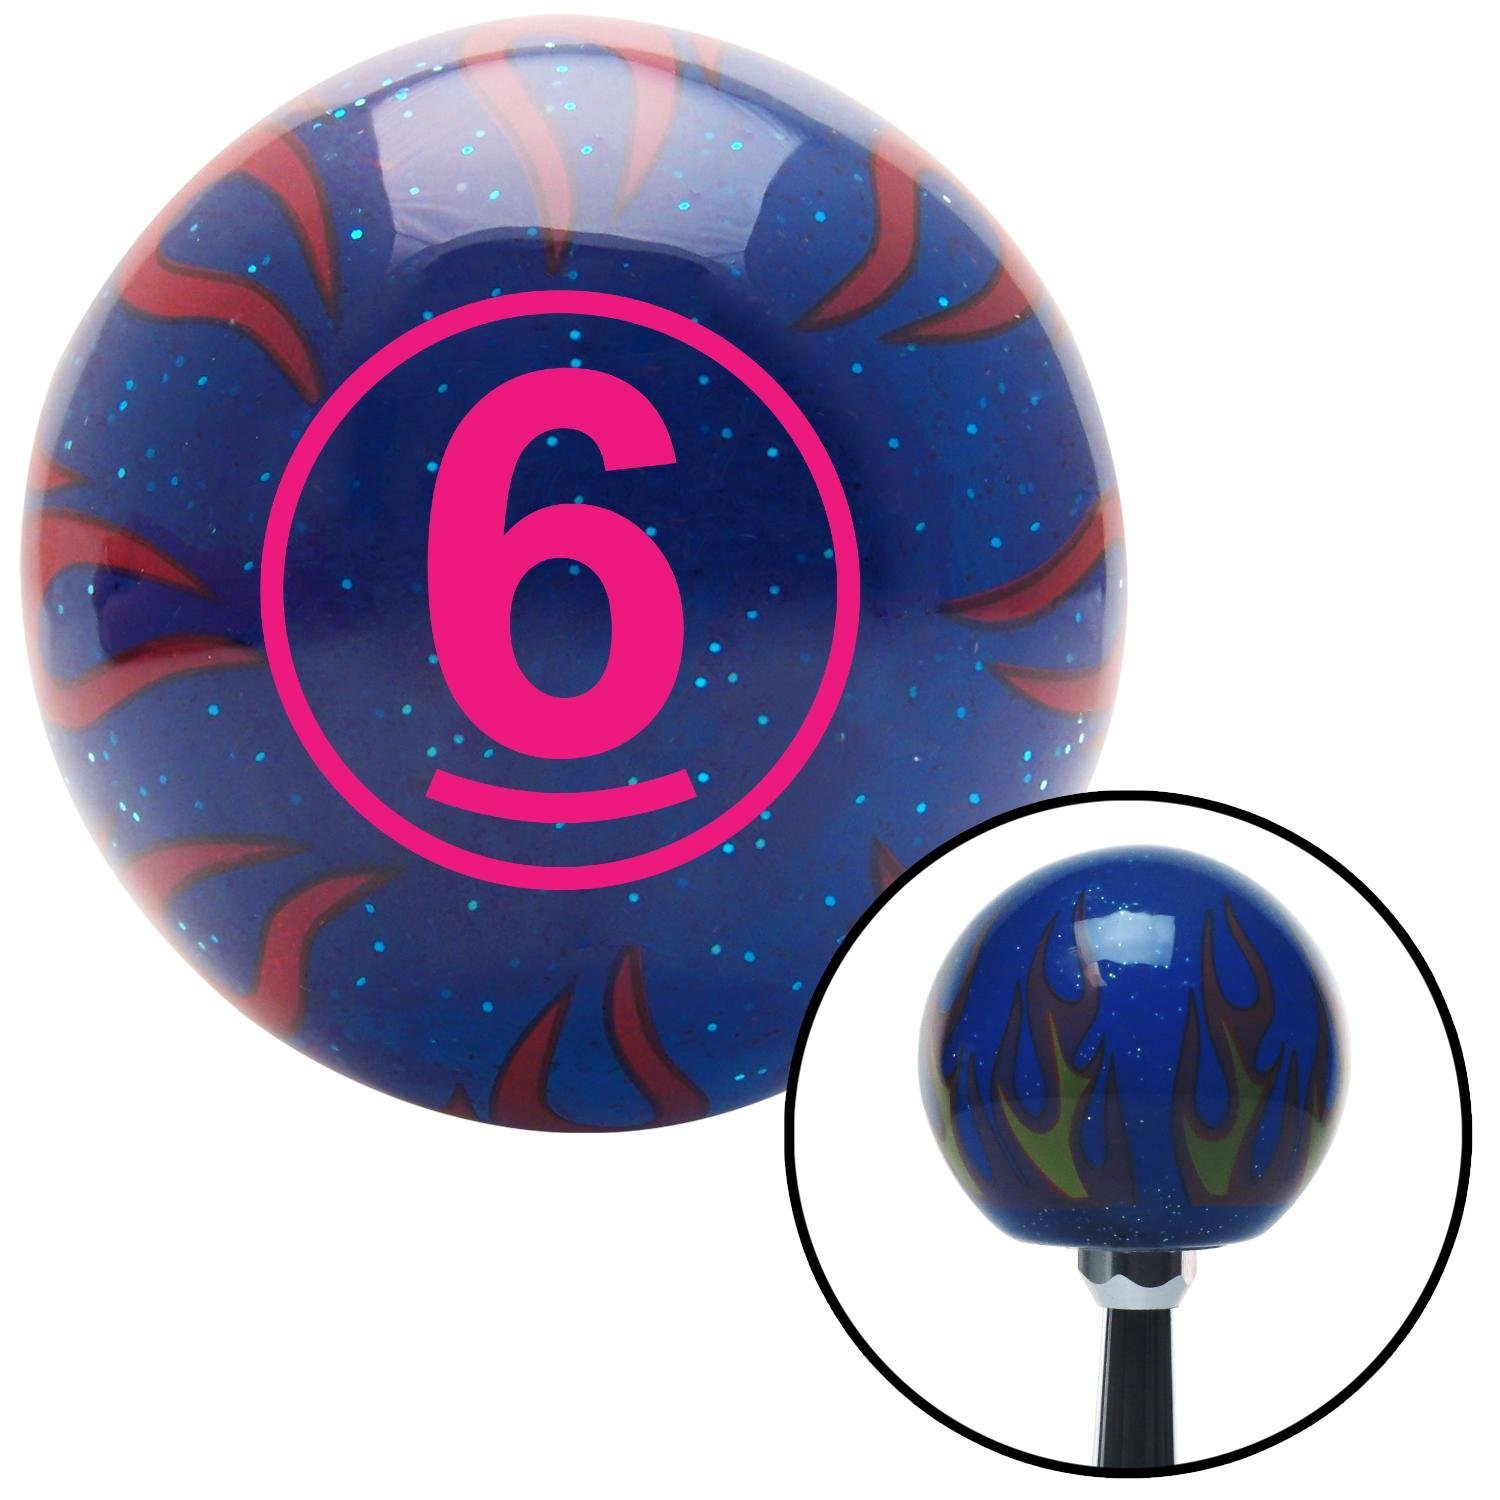 American Shifter 244550 Blue Flame Metal Flake Shift Knob with M16 x 1.5 Insert Pink Ball #6